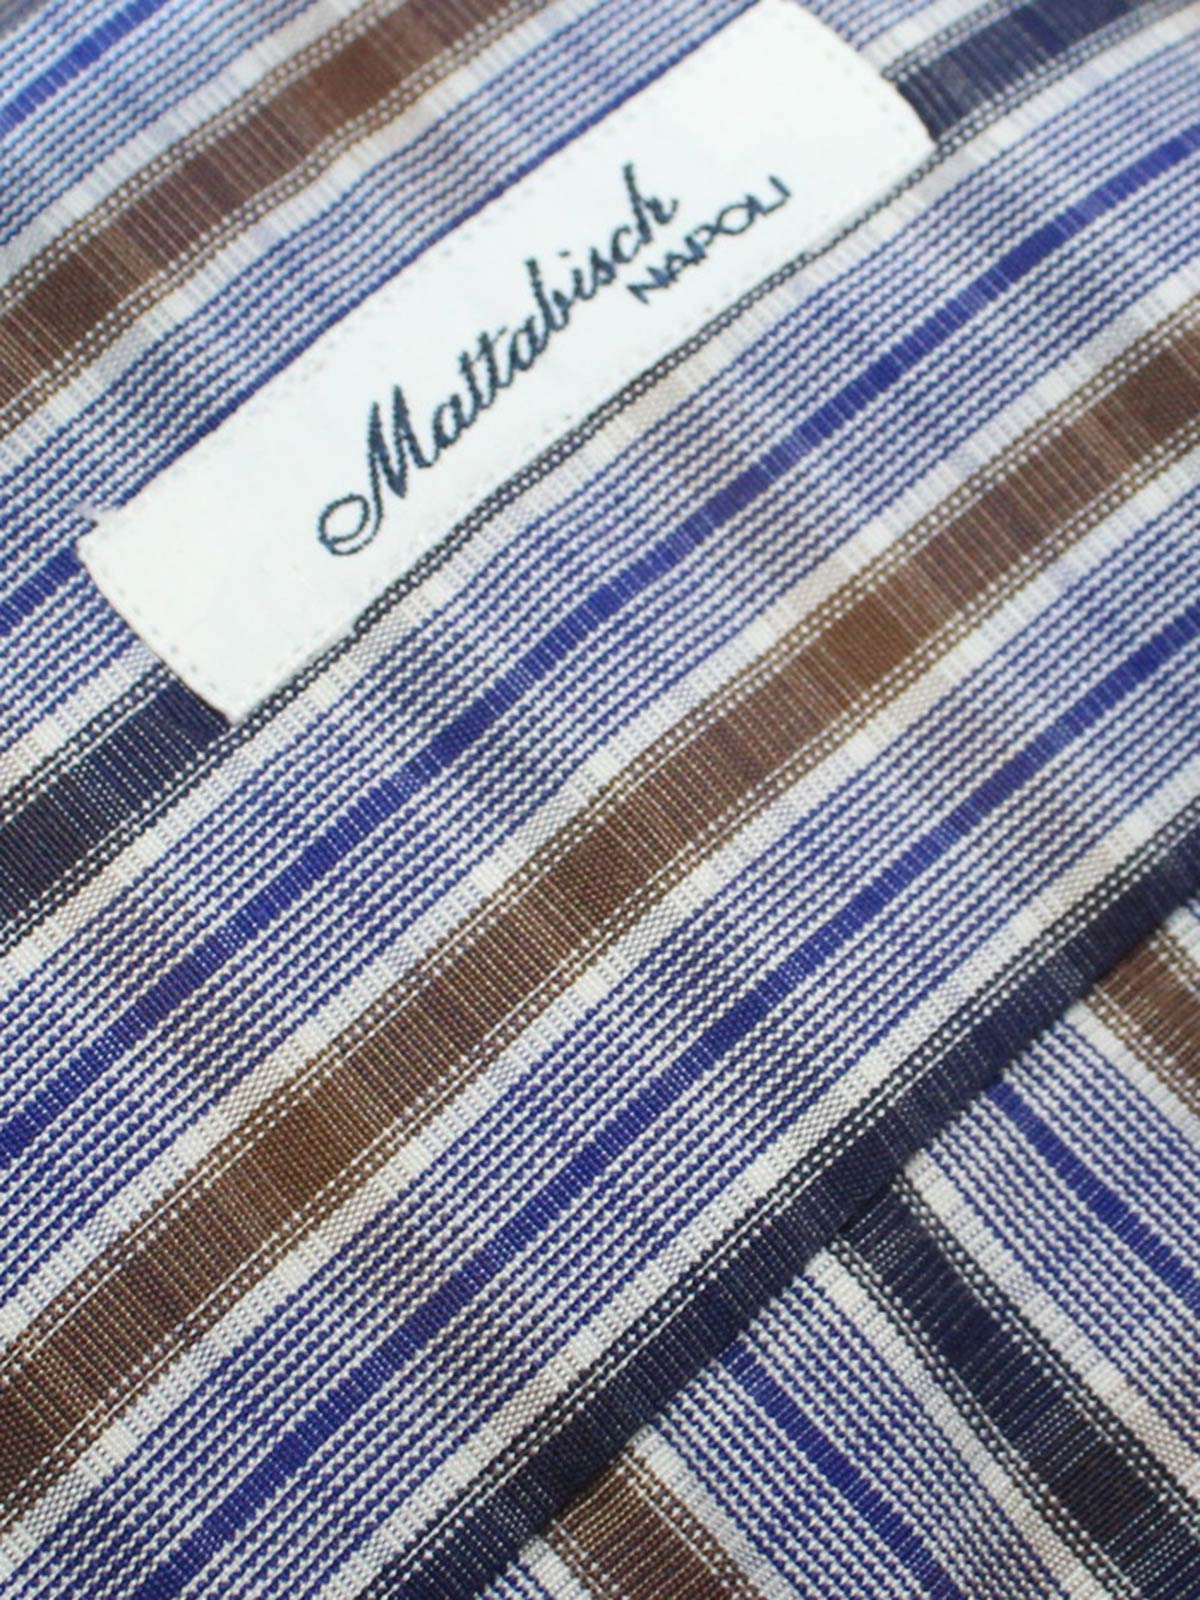 Mattabisch Dress Shirt White Royal Blue Brown Check - Sartorial Shirt 40 - 15 3/4 REDUCED - SALE